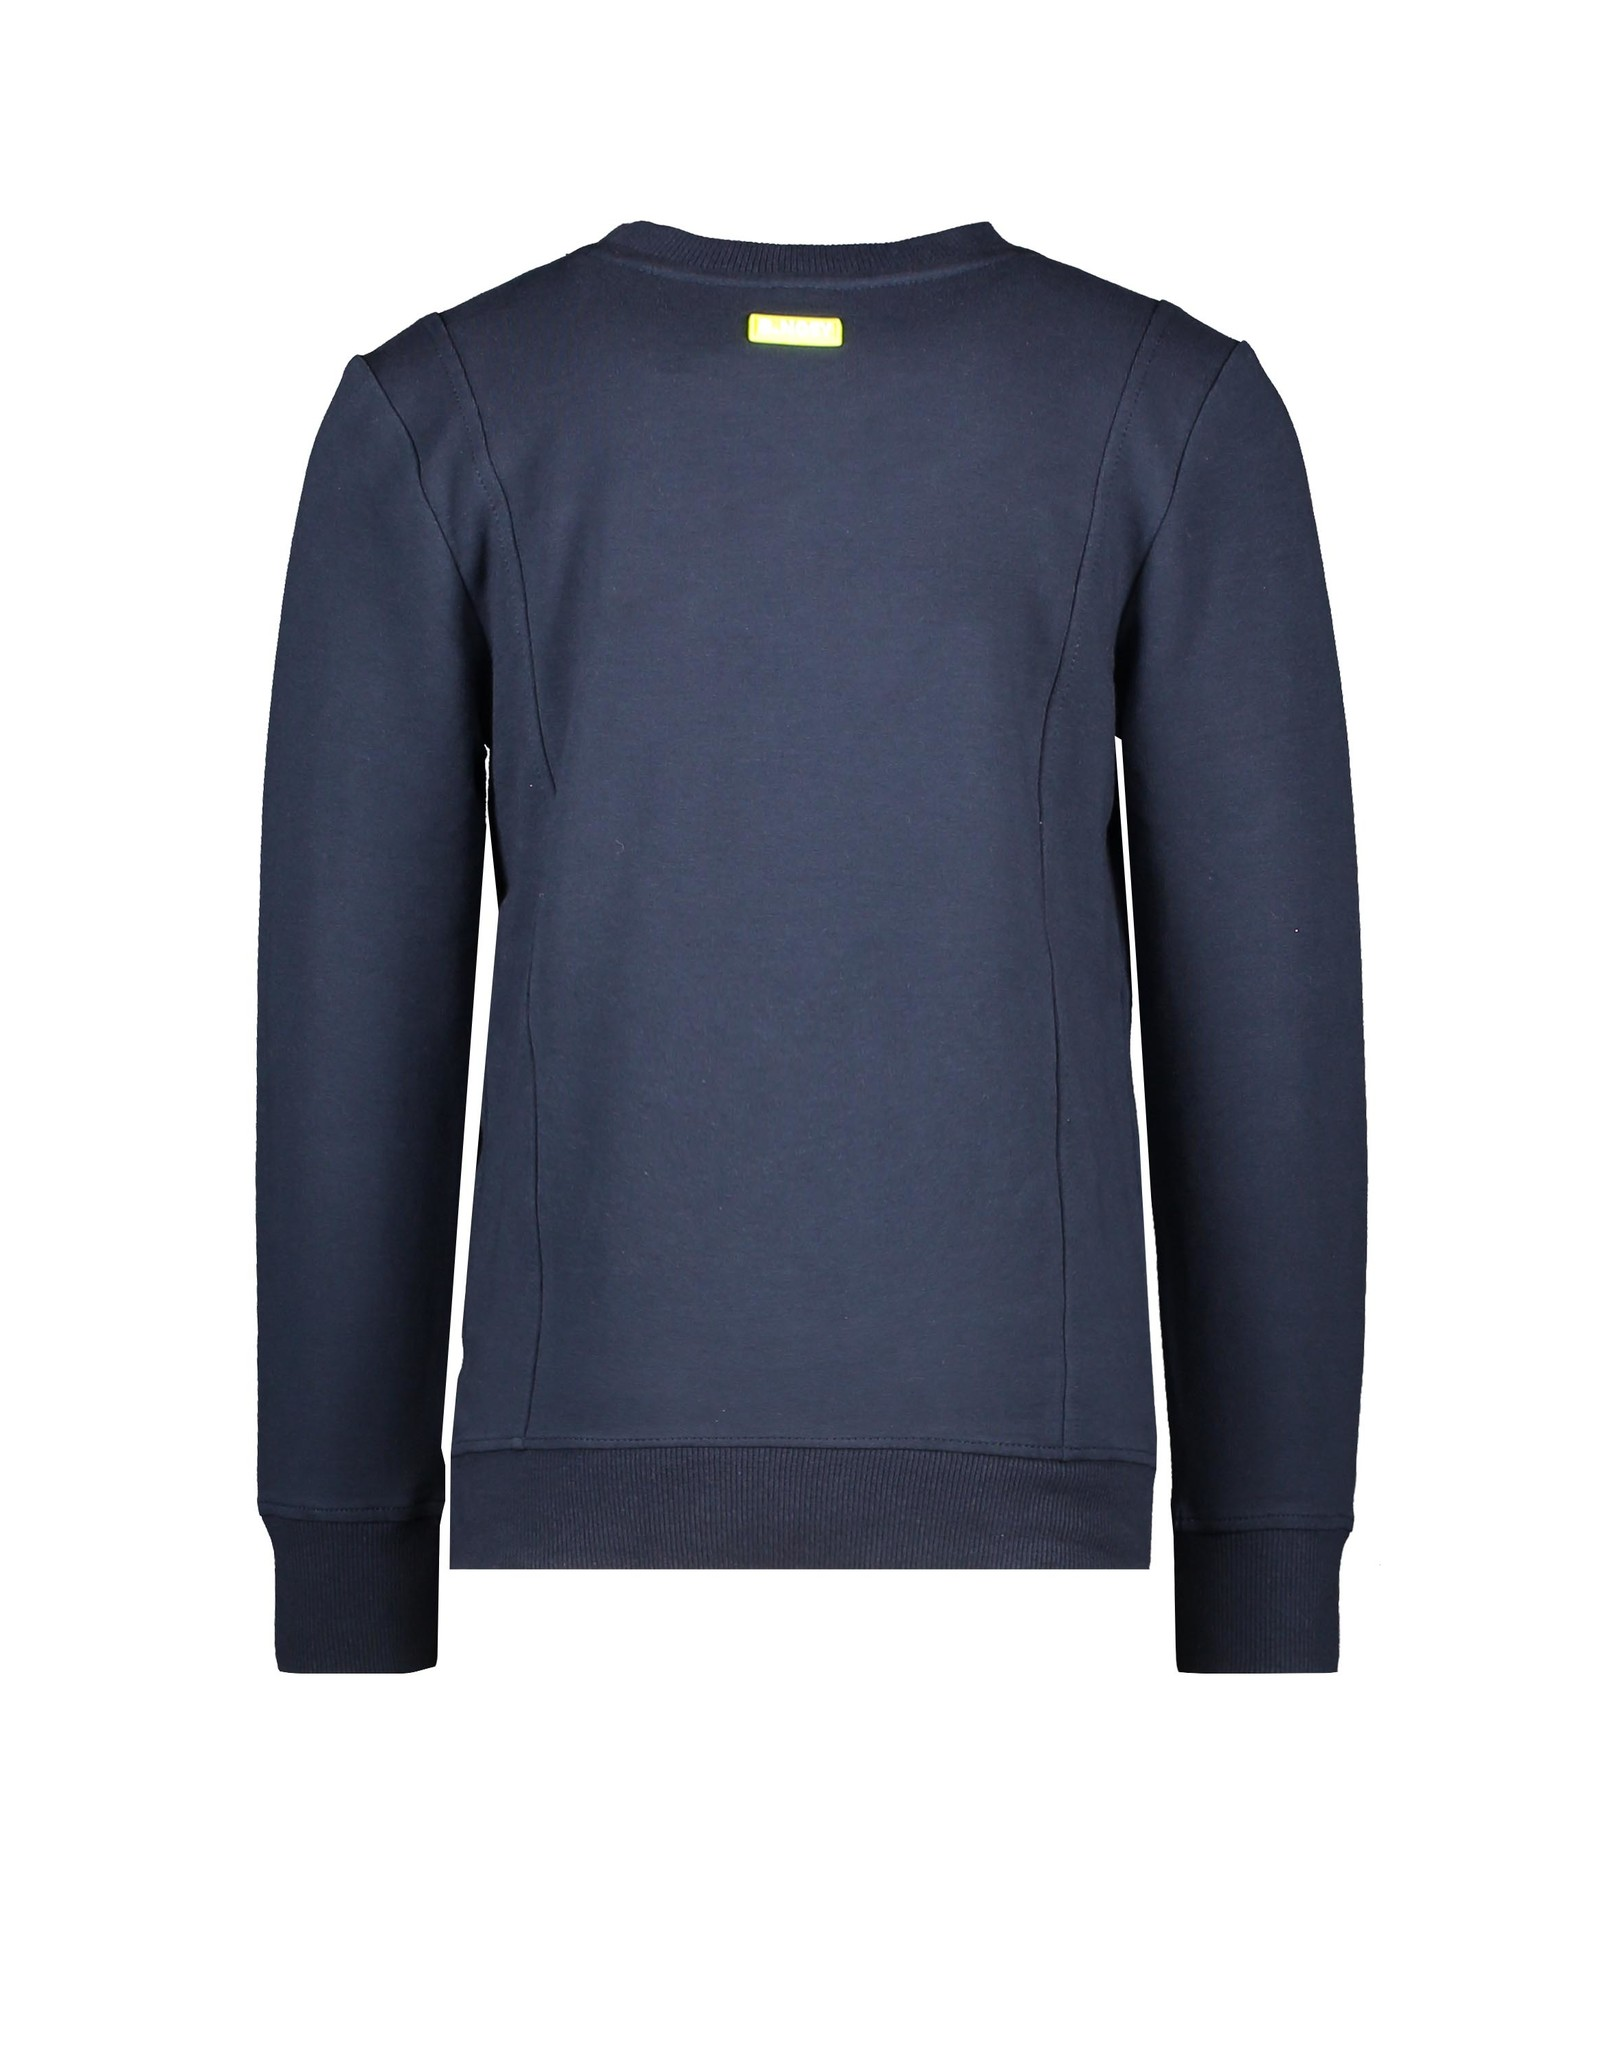 B.Nosy Boys sweater with fake pocket, side pockets